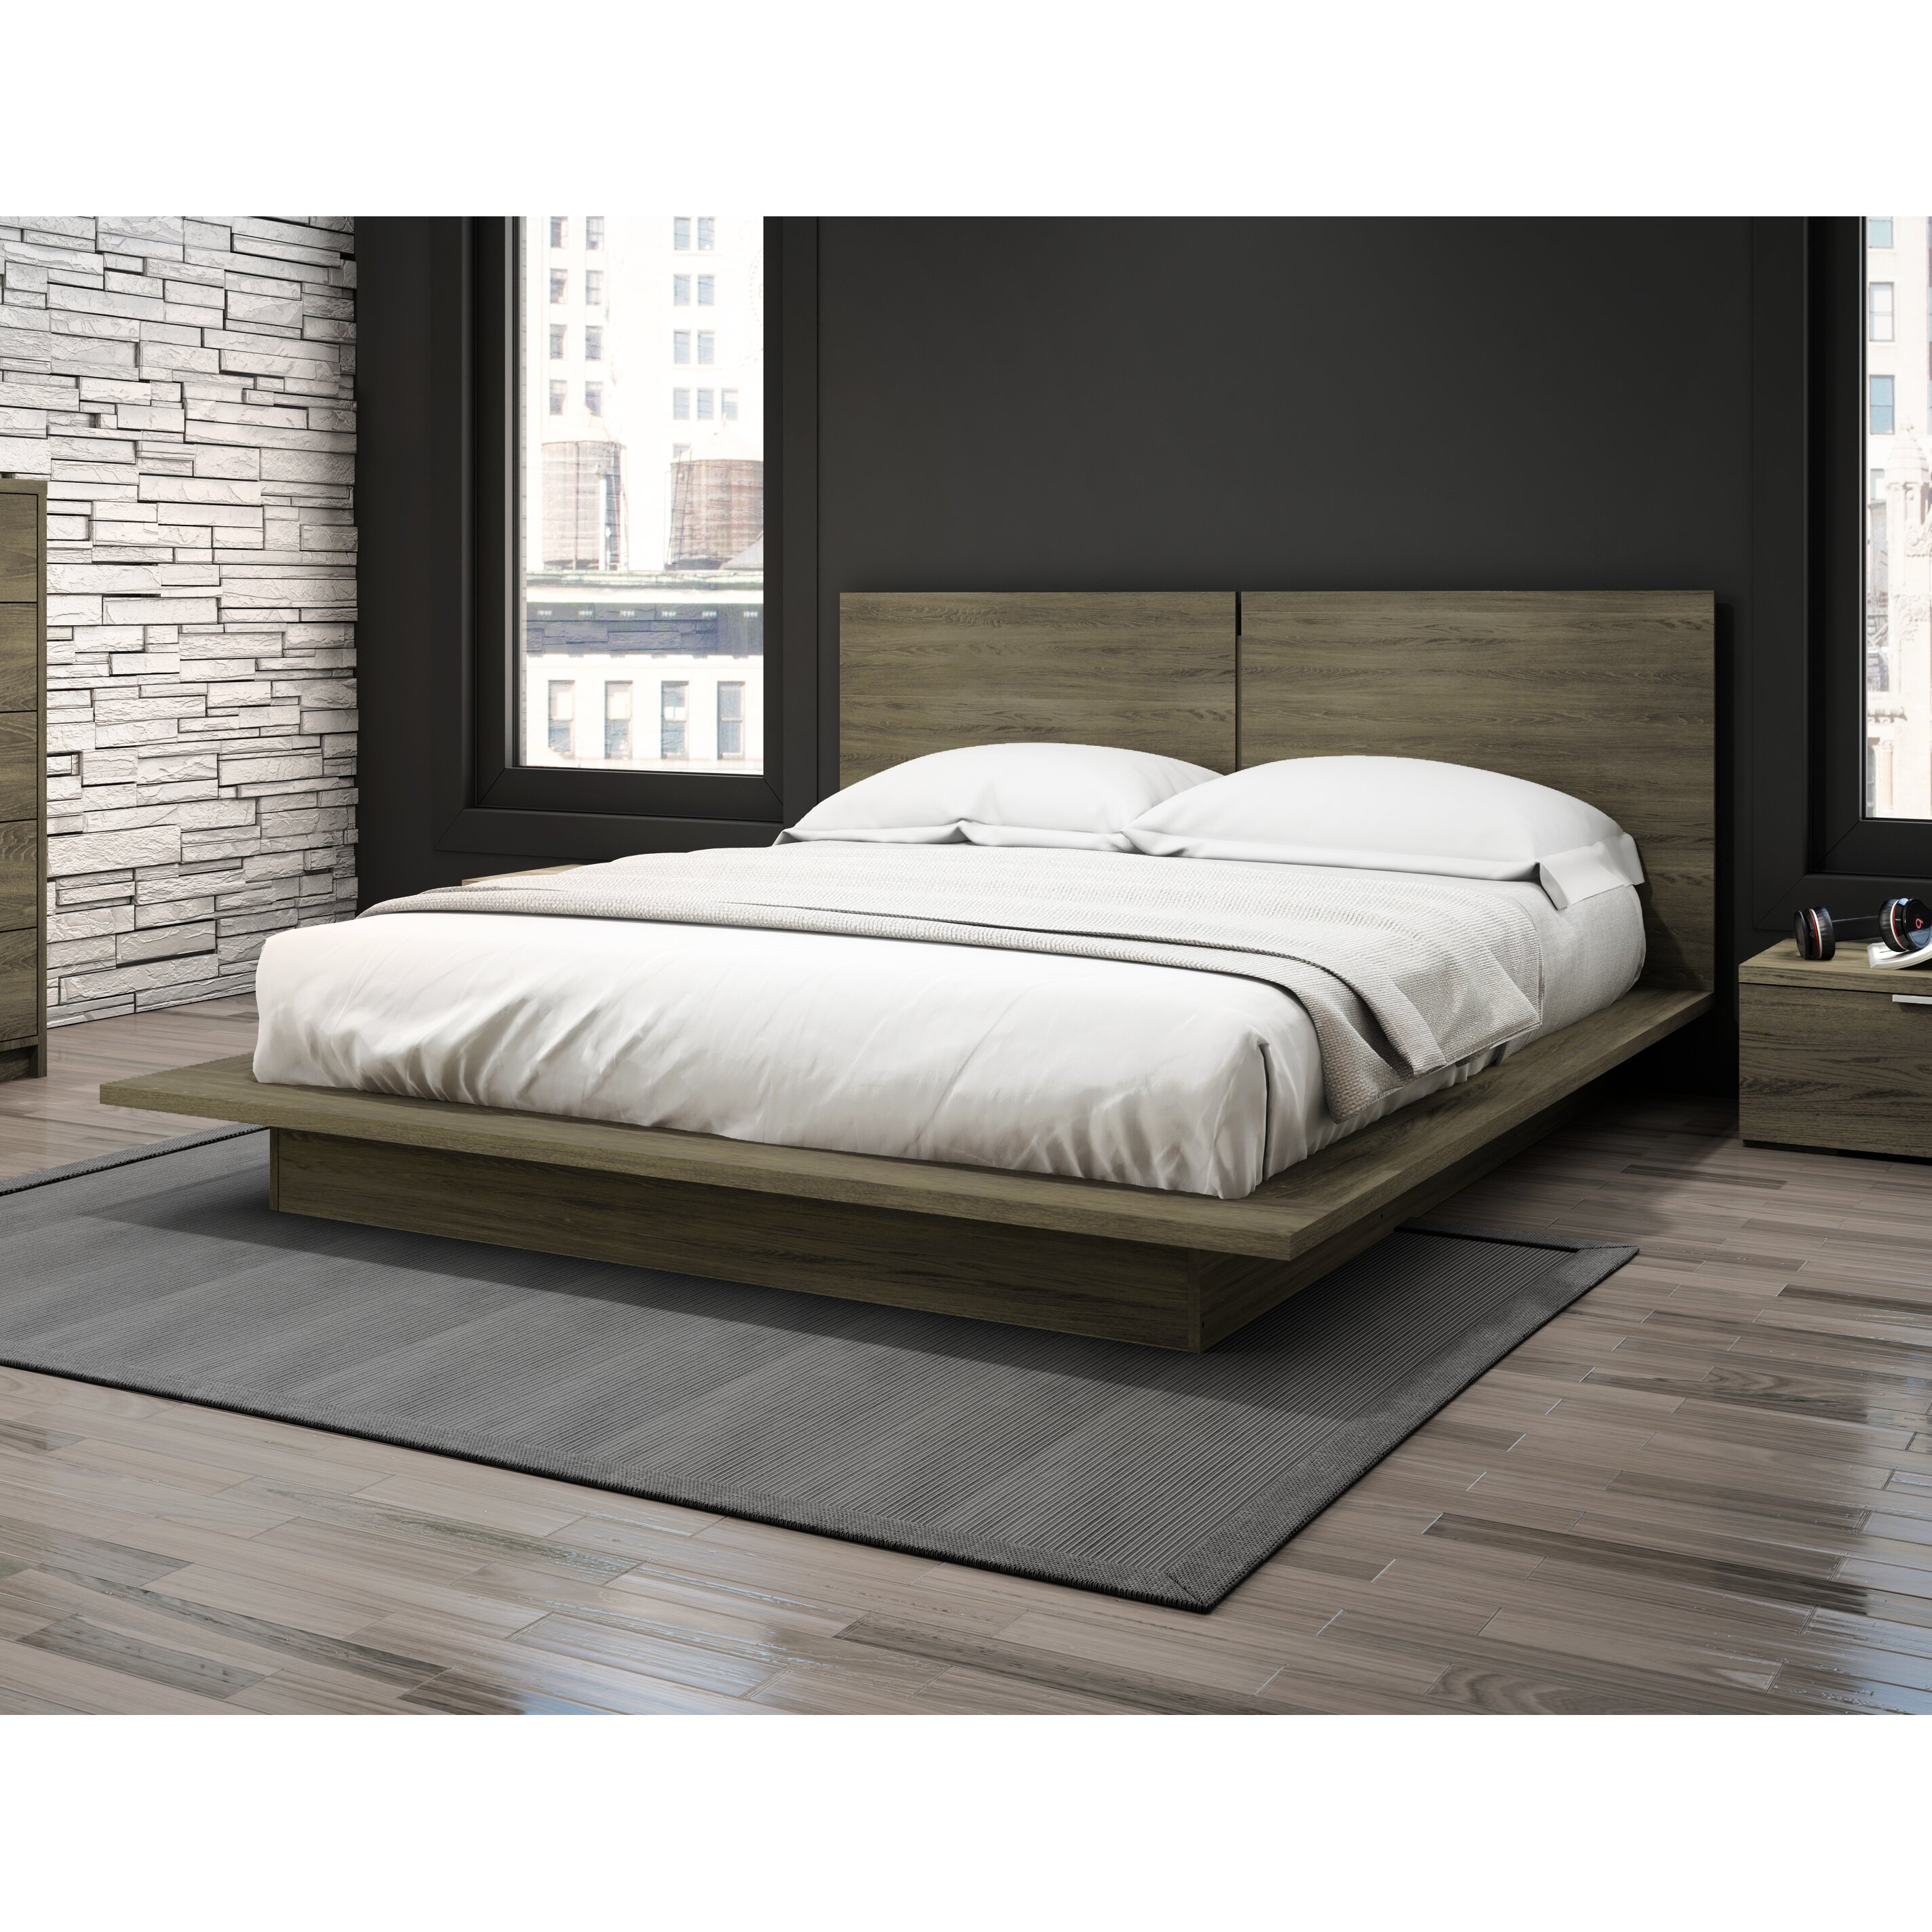 Stellar Home Modena Queen Platform Bed Reviews